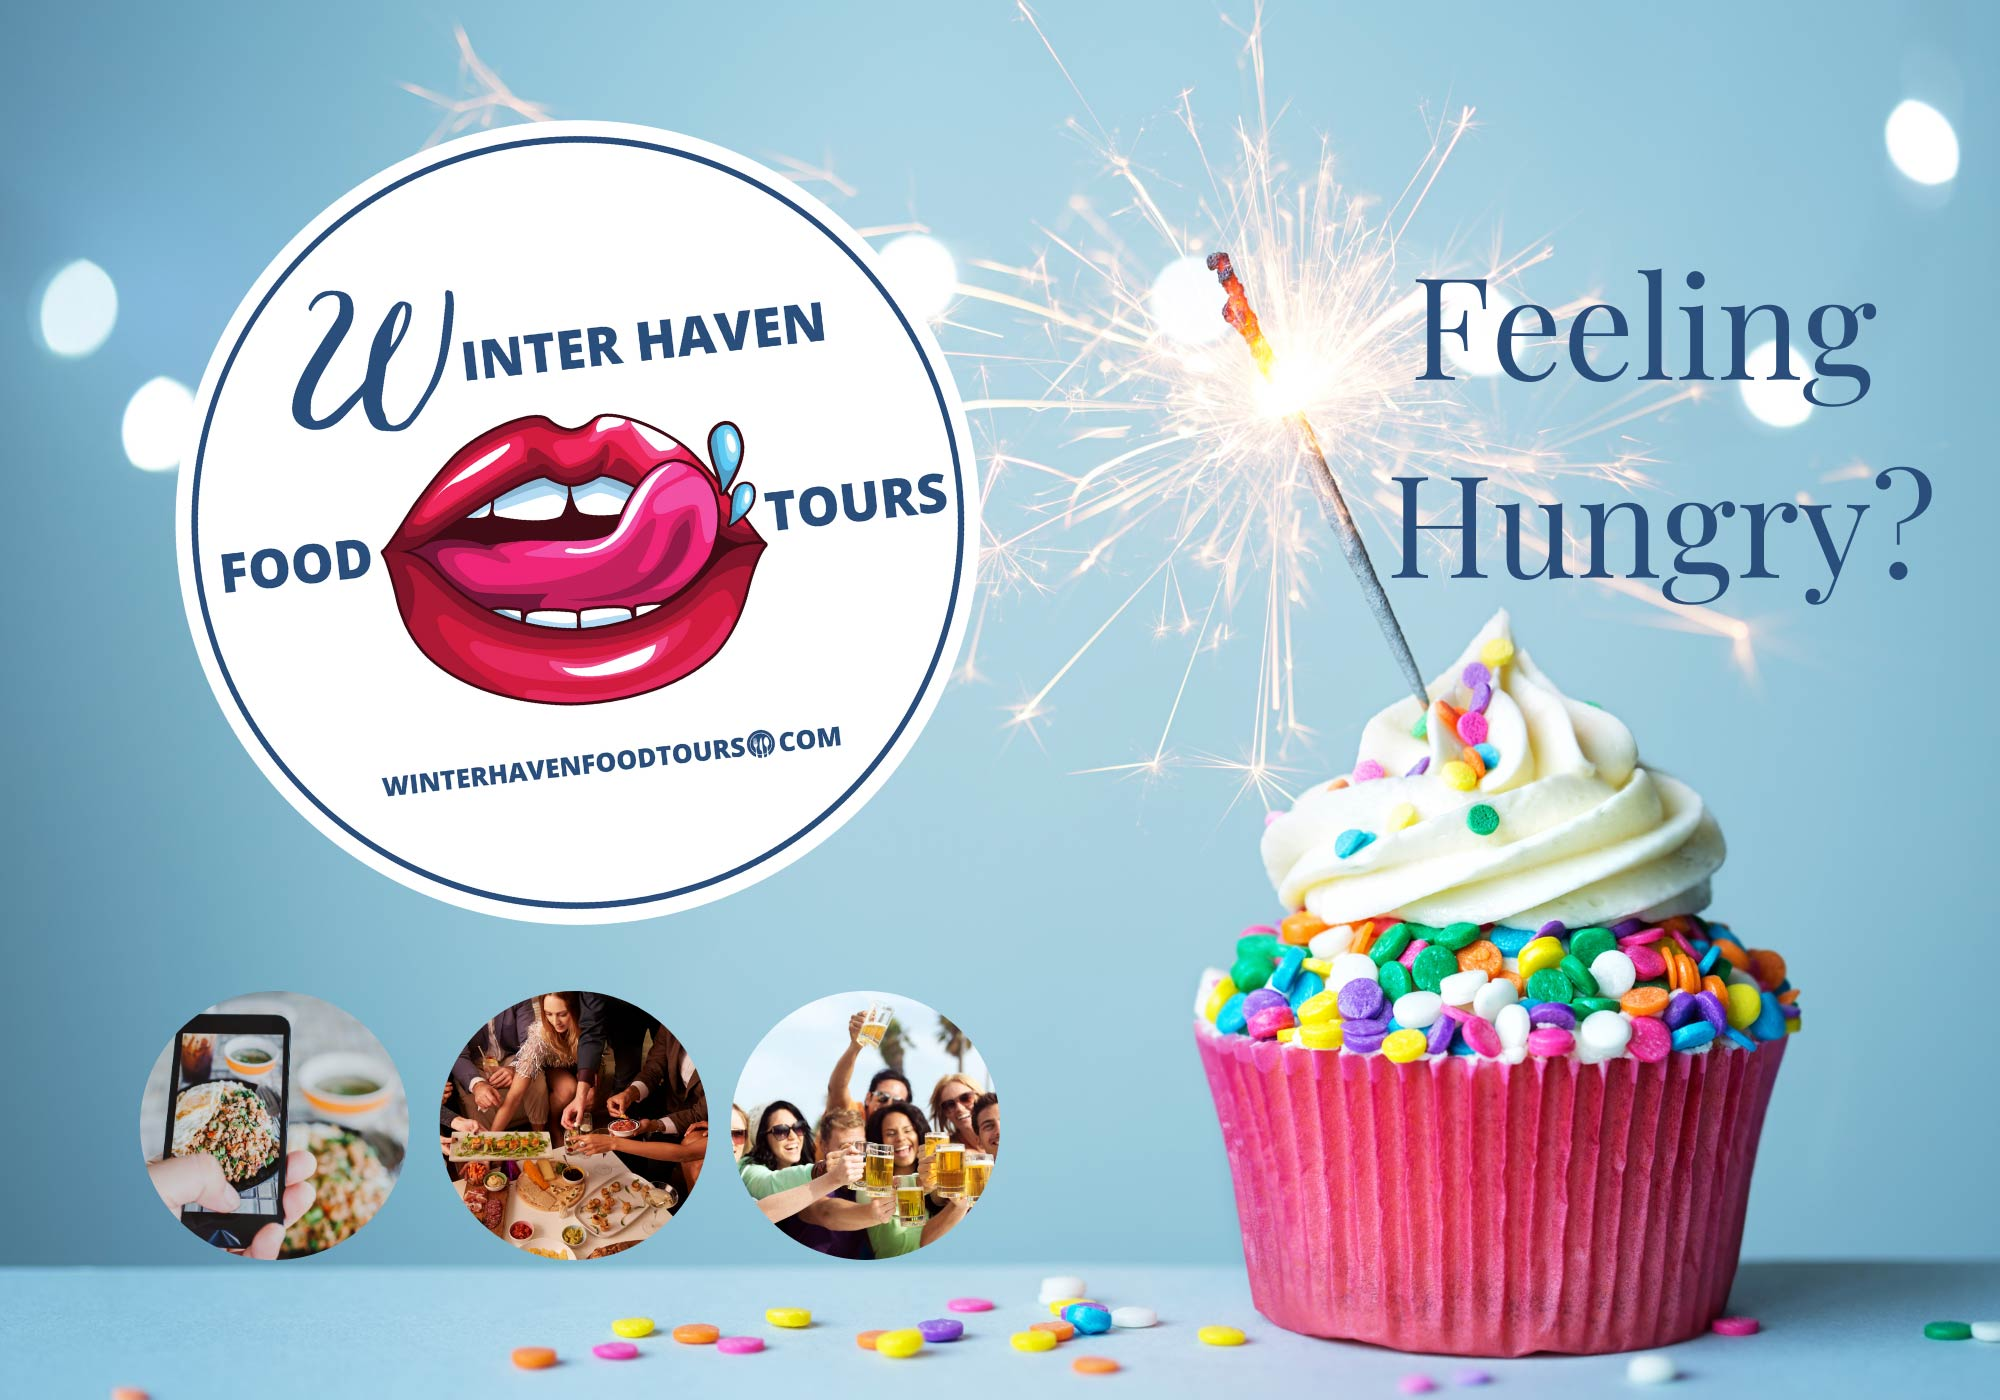 Winter Haven Food Tours postcard and logo